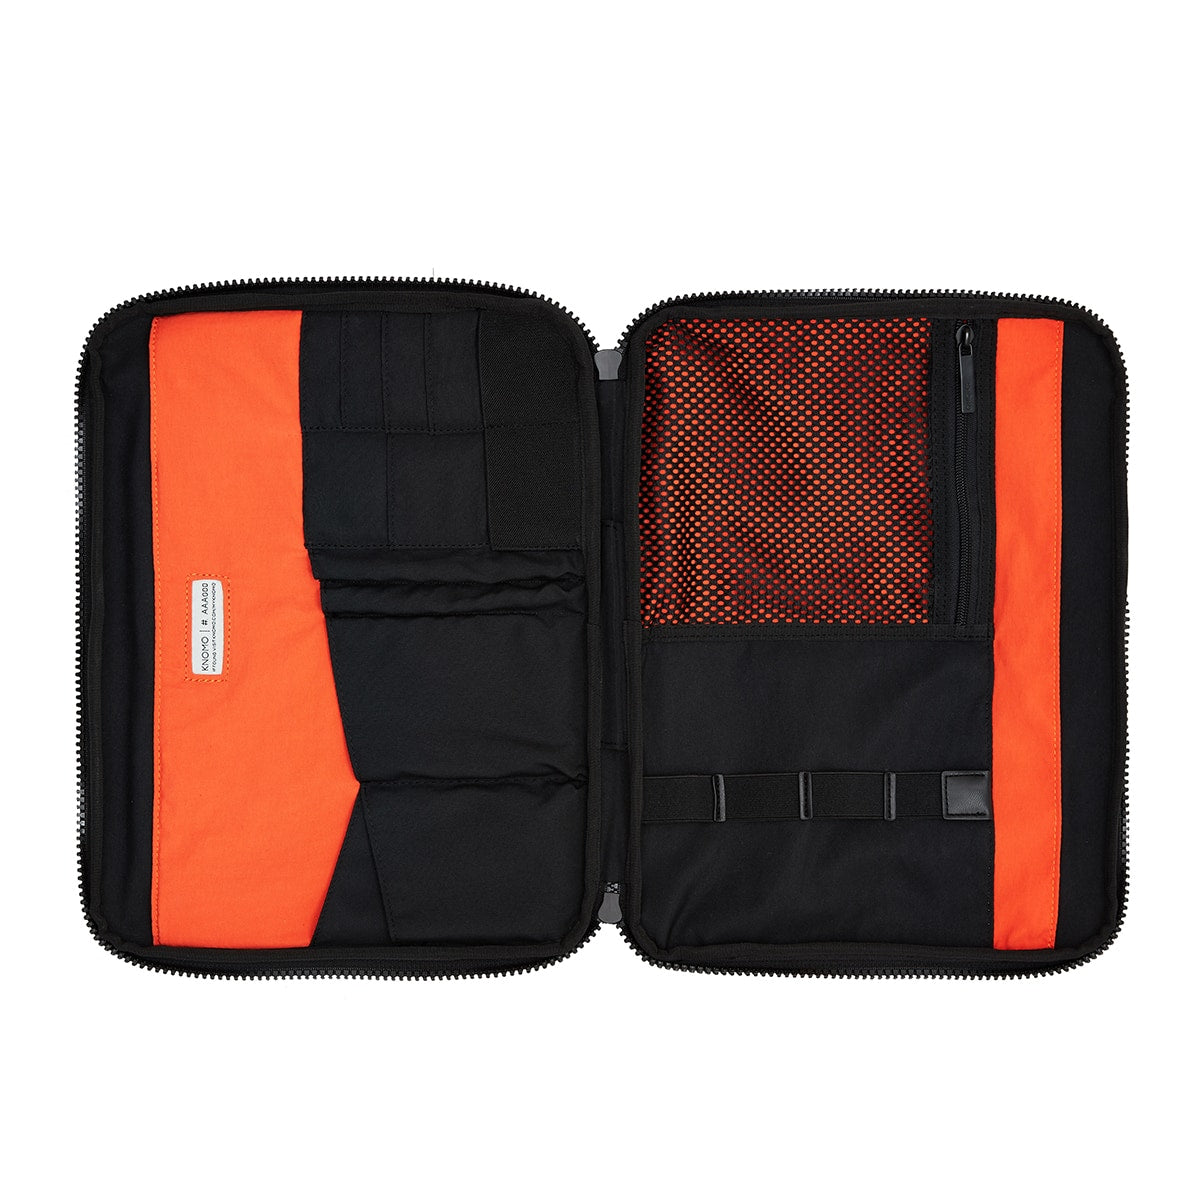 "Thames Knomad Organizer Tech Organizer for Work - 13"" -  13"" 